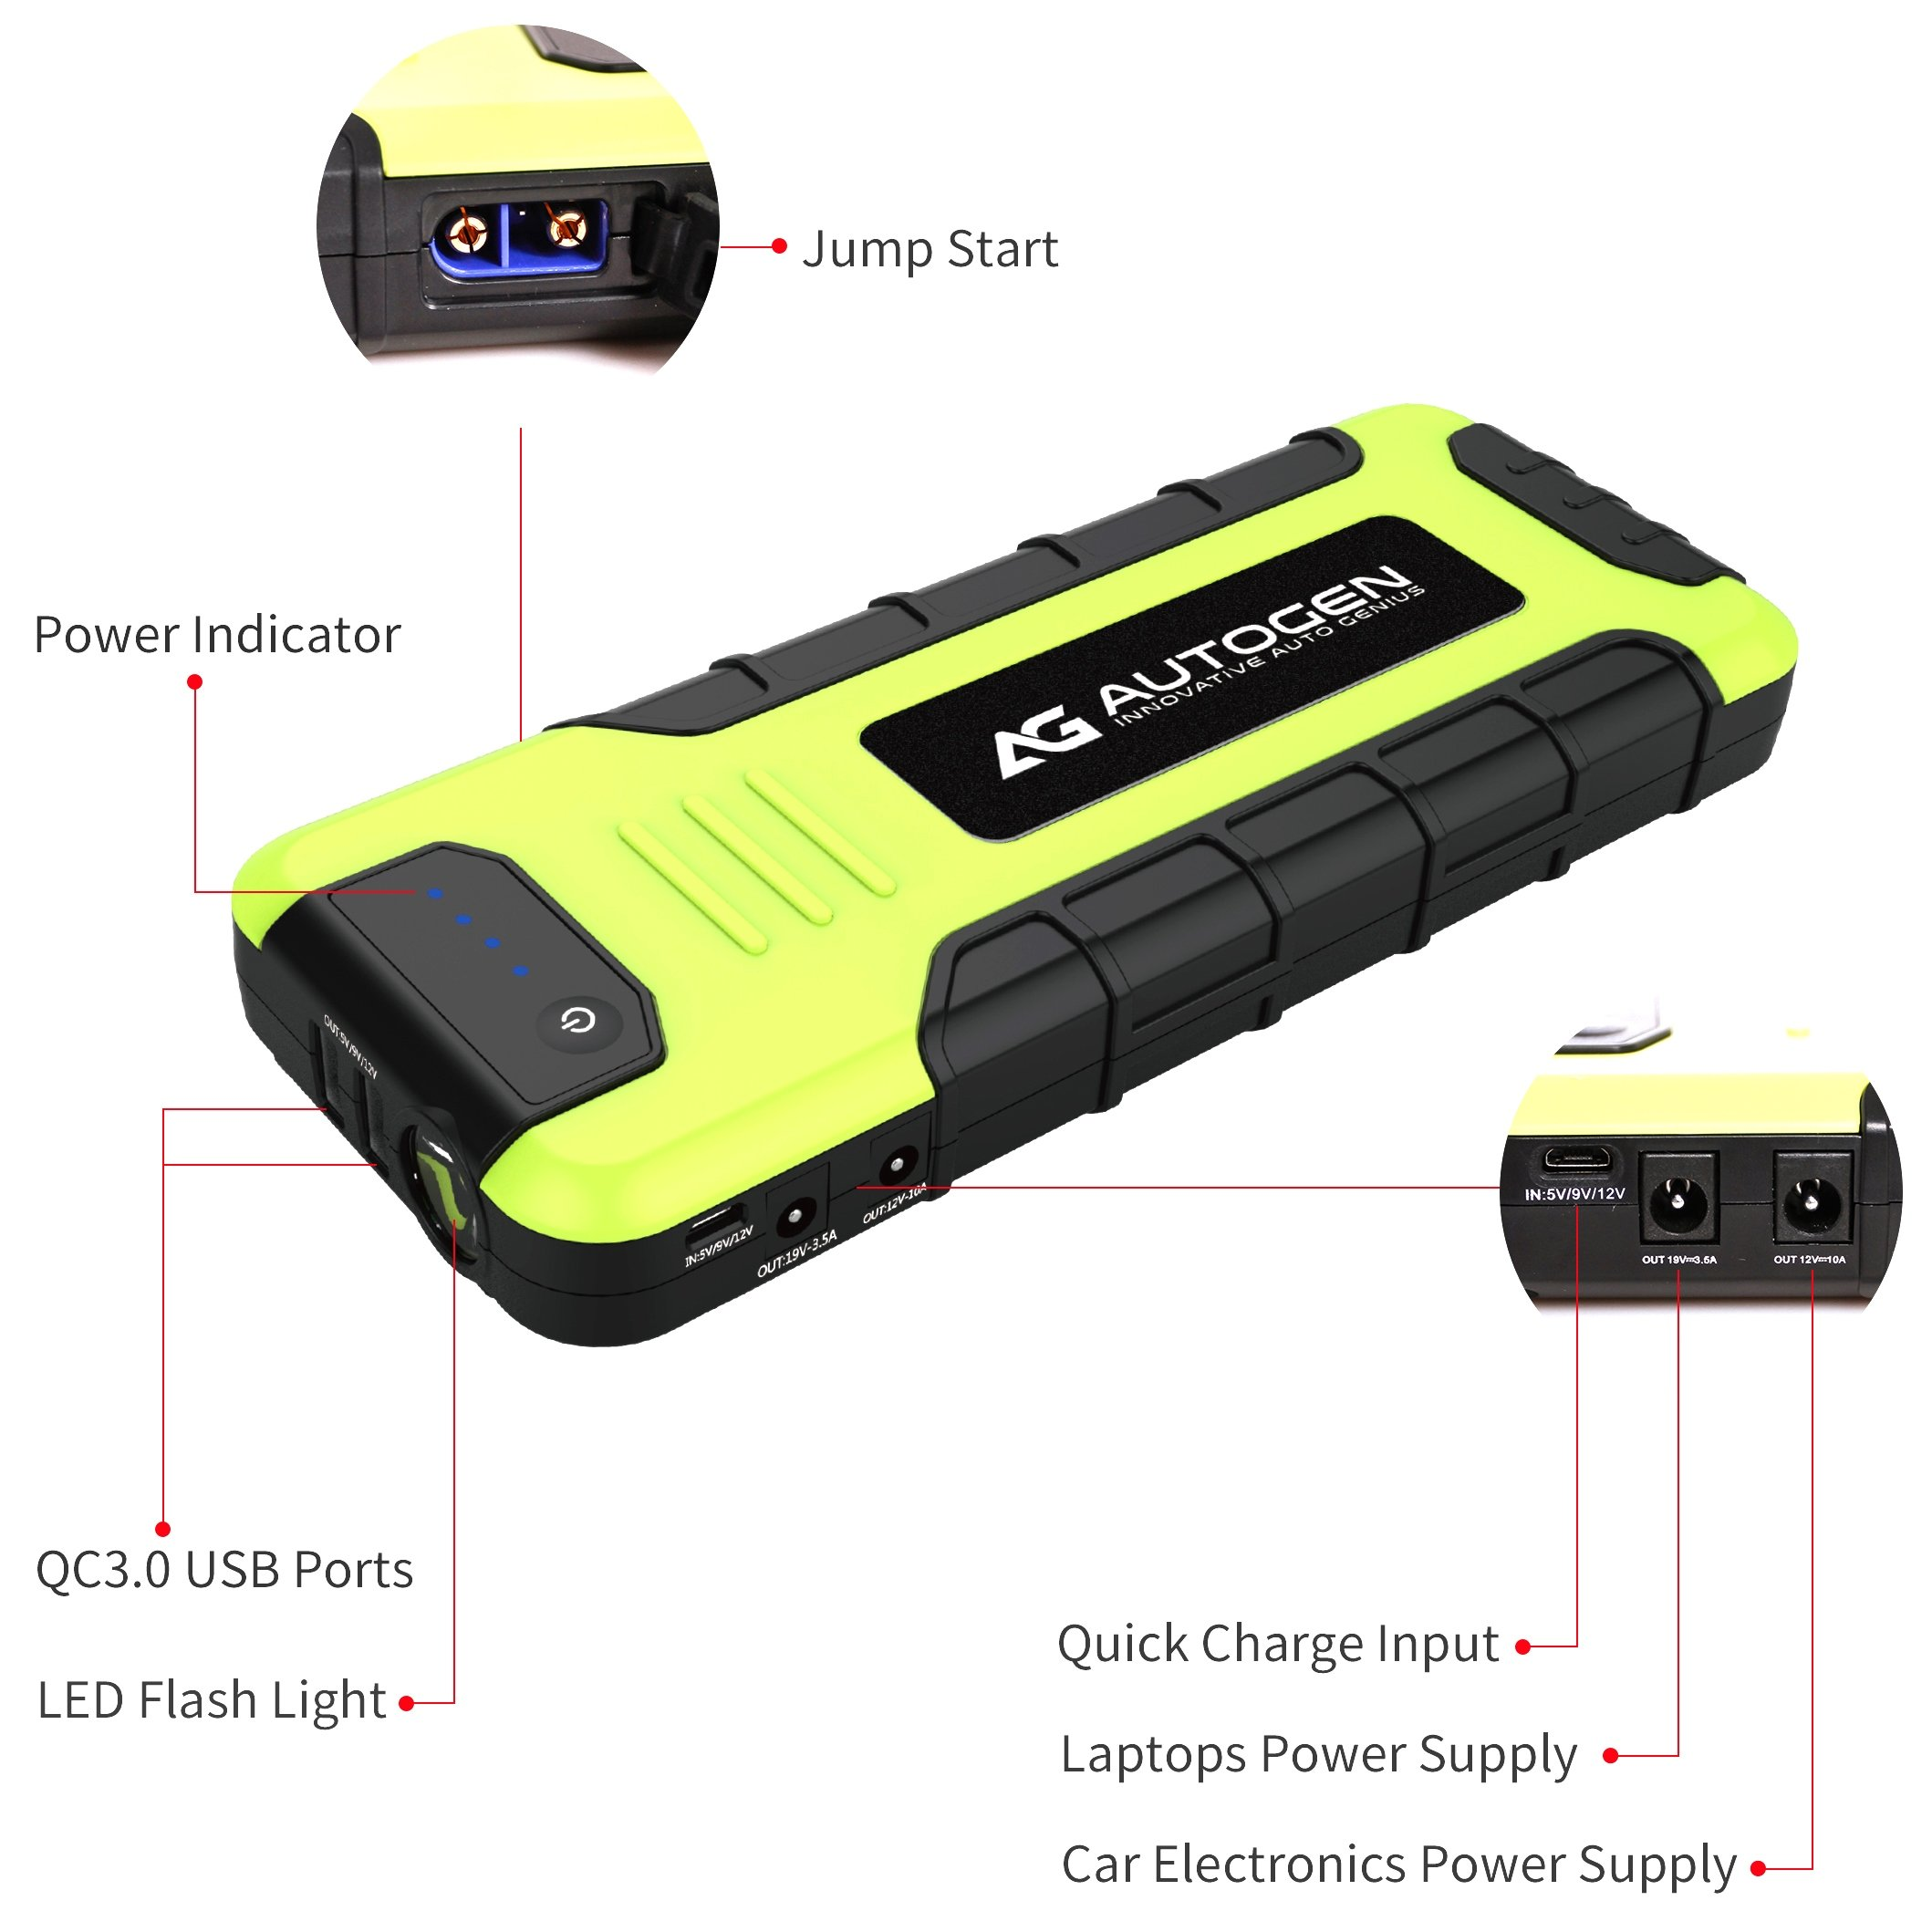 AUTOGEN 2000A Peak Portable Jump Starter for Vehicles (up to 8.0L Gas or 6.5L Diesel) & Quick Charge 3.0 Power Charger, with Mistake-Proof Intelligent Clamps for Cars Boats RVs & Mowers by AUTOGEN (Image #4)